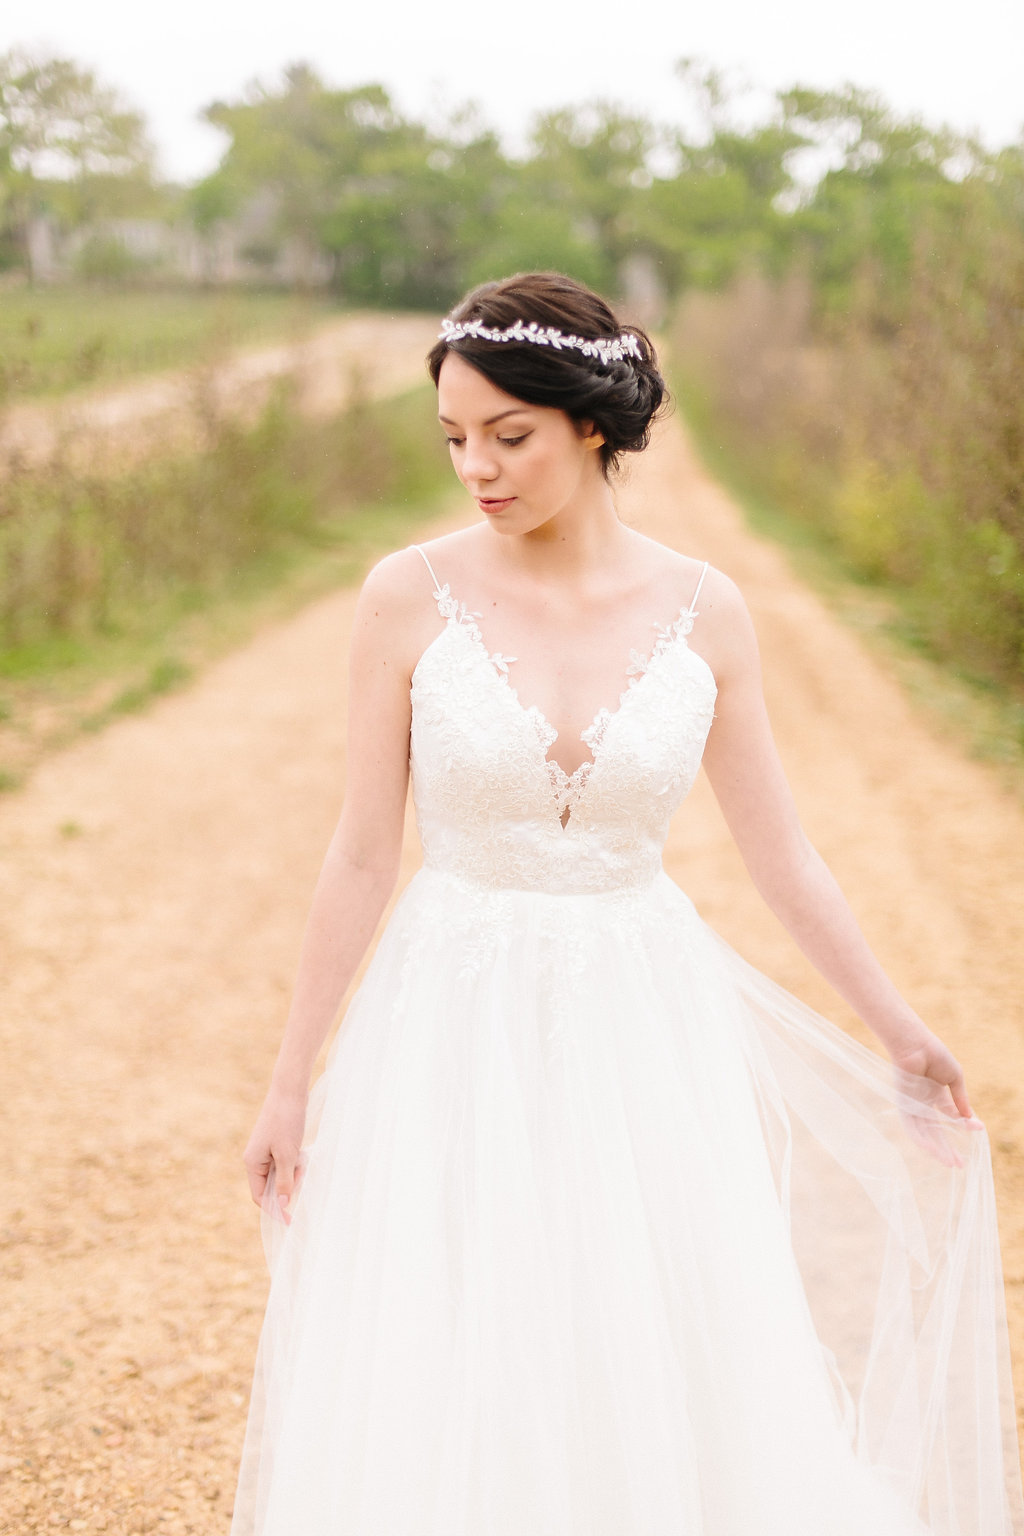 Cindy Bam Illusion Lace Wedding Dress | Image: Nelani Van Zyl